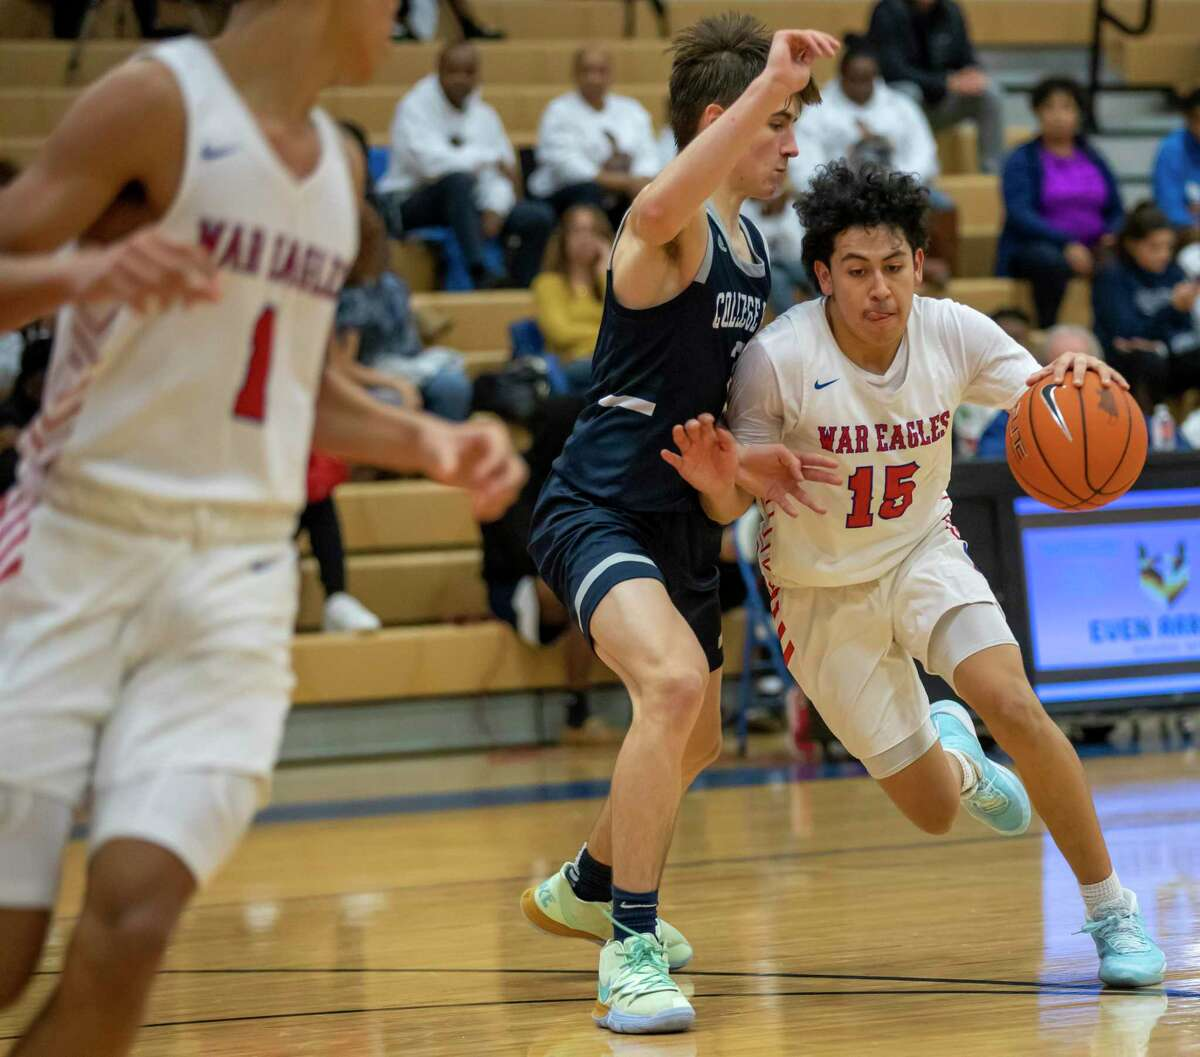 Oak Ridge guard Marco Limon (15) returns after earning second team all-district recognition in 2019-20.